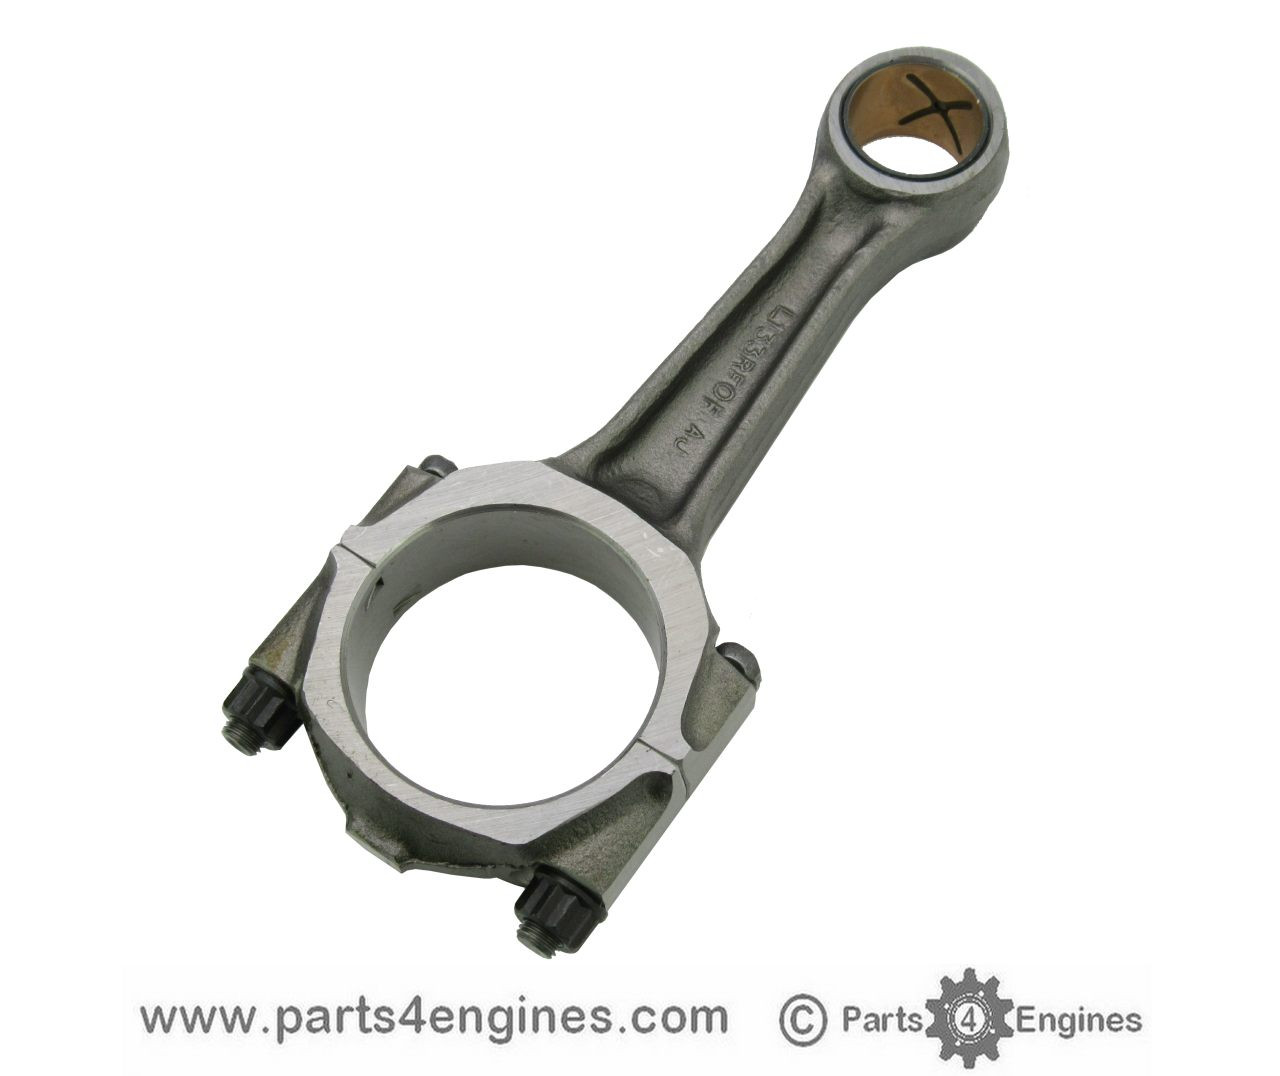 Volvo Penta TMD22 Connecting rod, from parts4engines.com